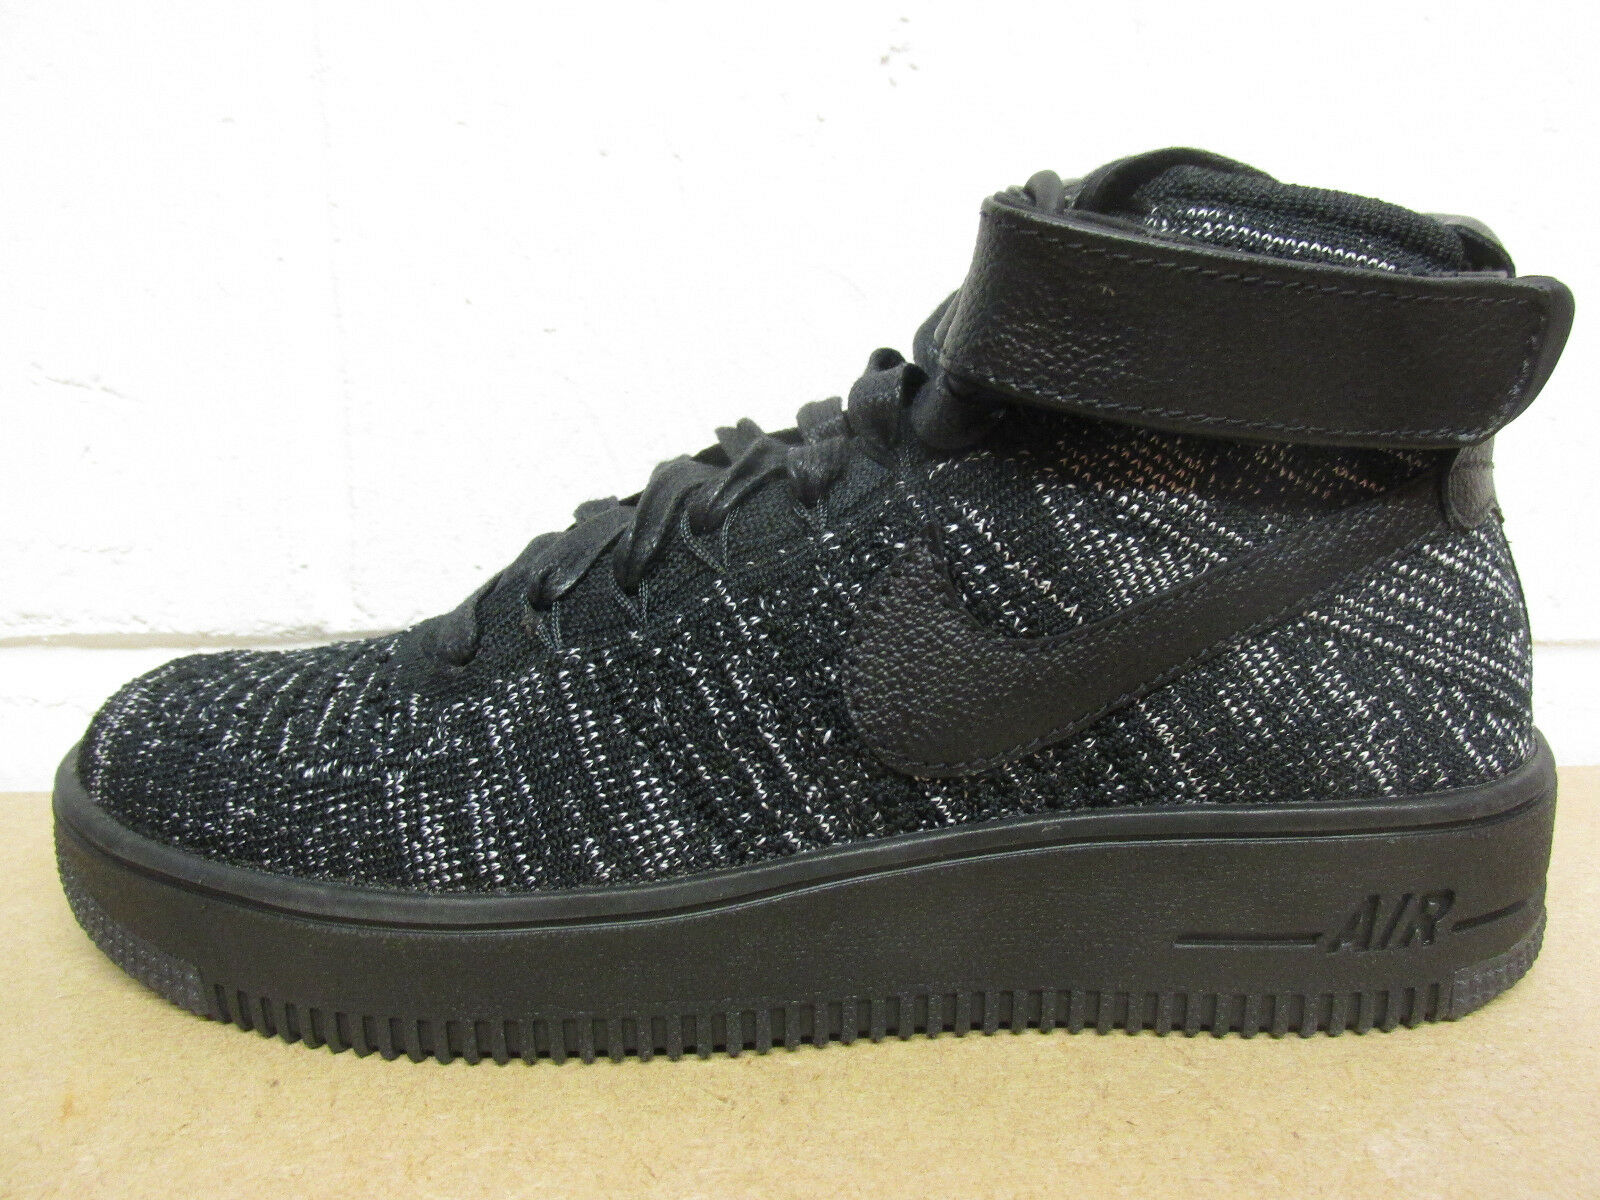 Nike Femme AF1 Air Force 1 Flyknit Baskets Montantes 818018 002 Baskets Chaussures